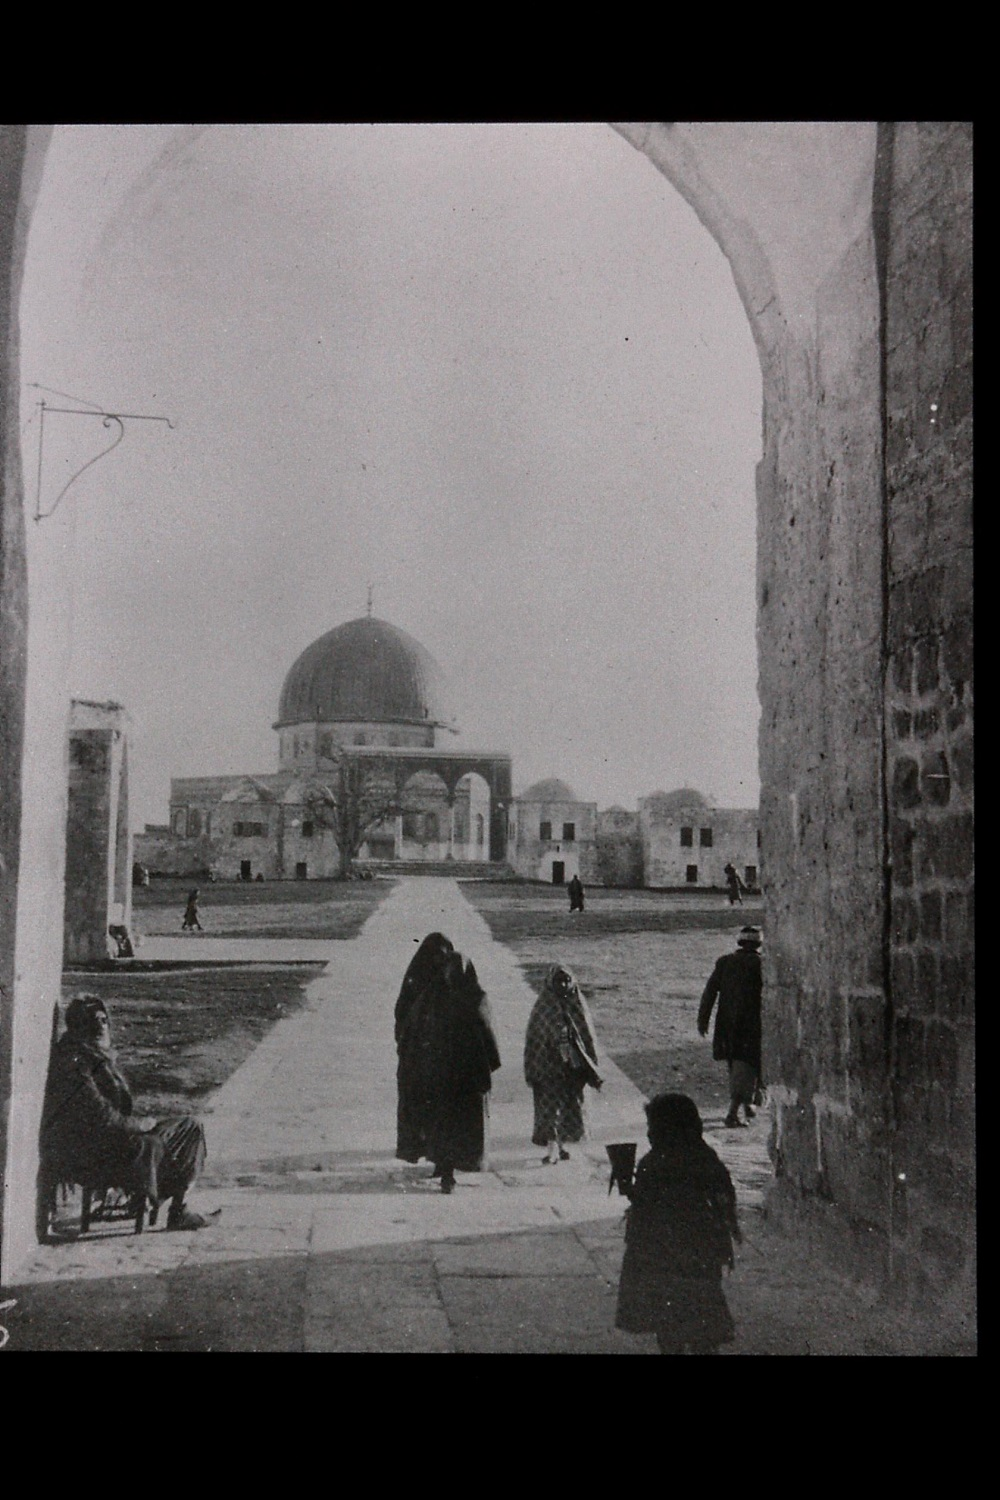 A35 Haram entrance gate, taken by Bell in December 1899